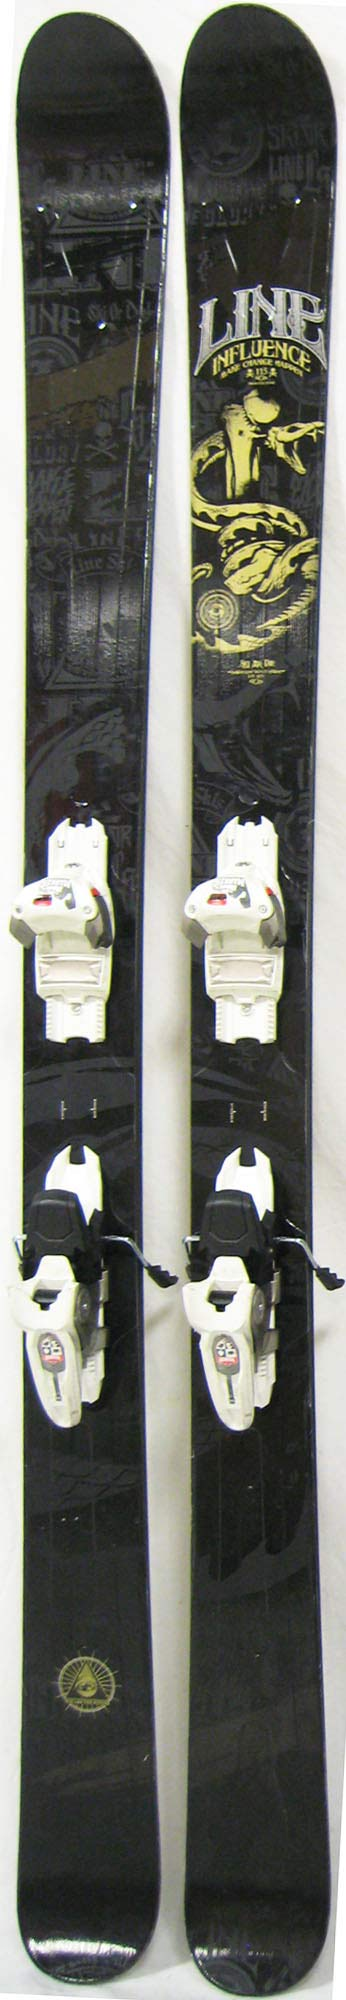 Topsheets of 2012 Line Influence 115 Skis For Sale